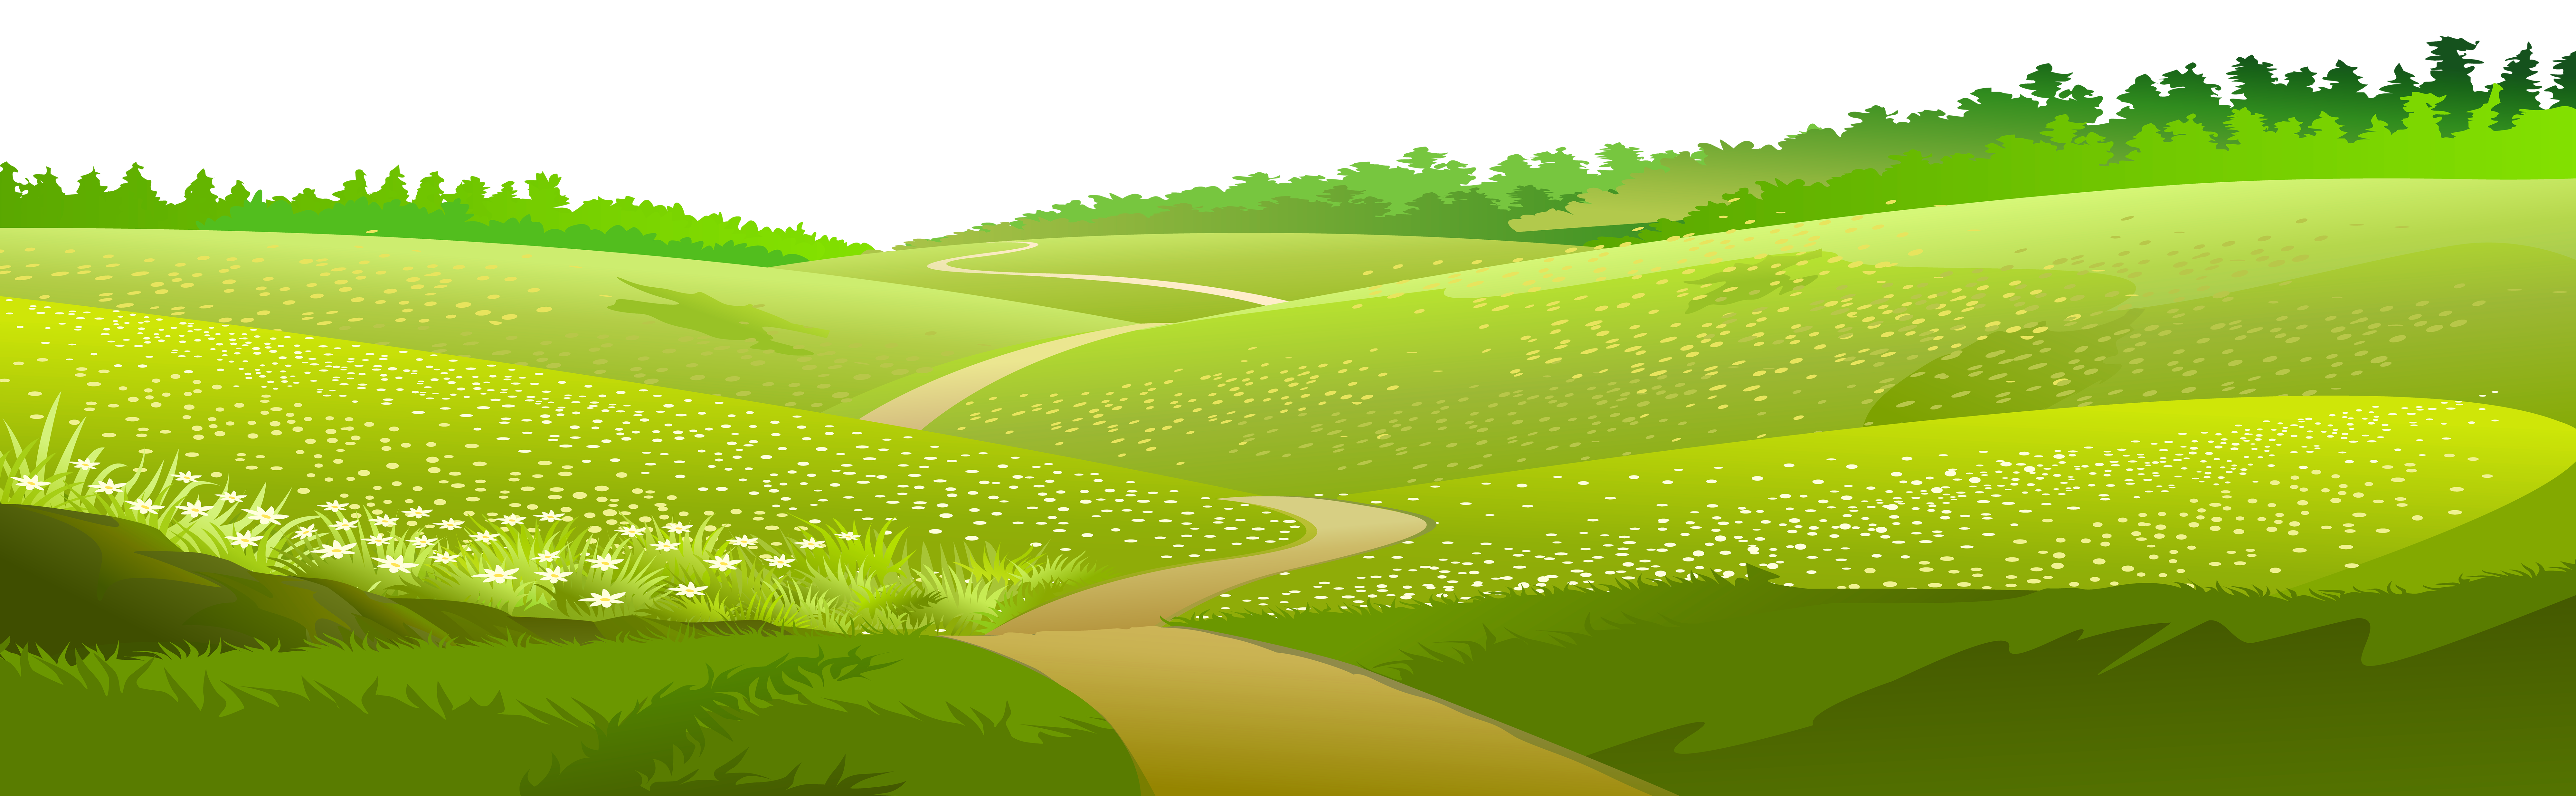 banner library Ground clipart landscape. Meadow transparent clip art